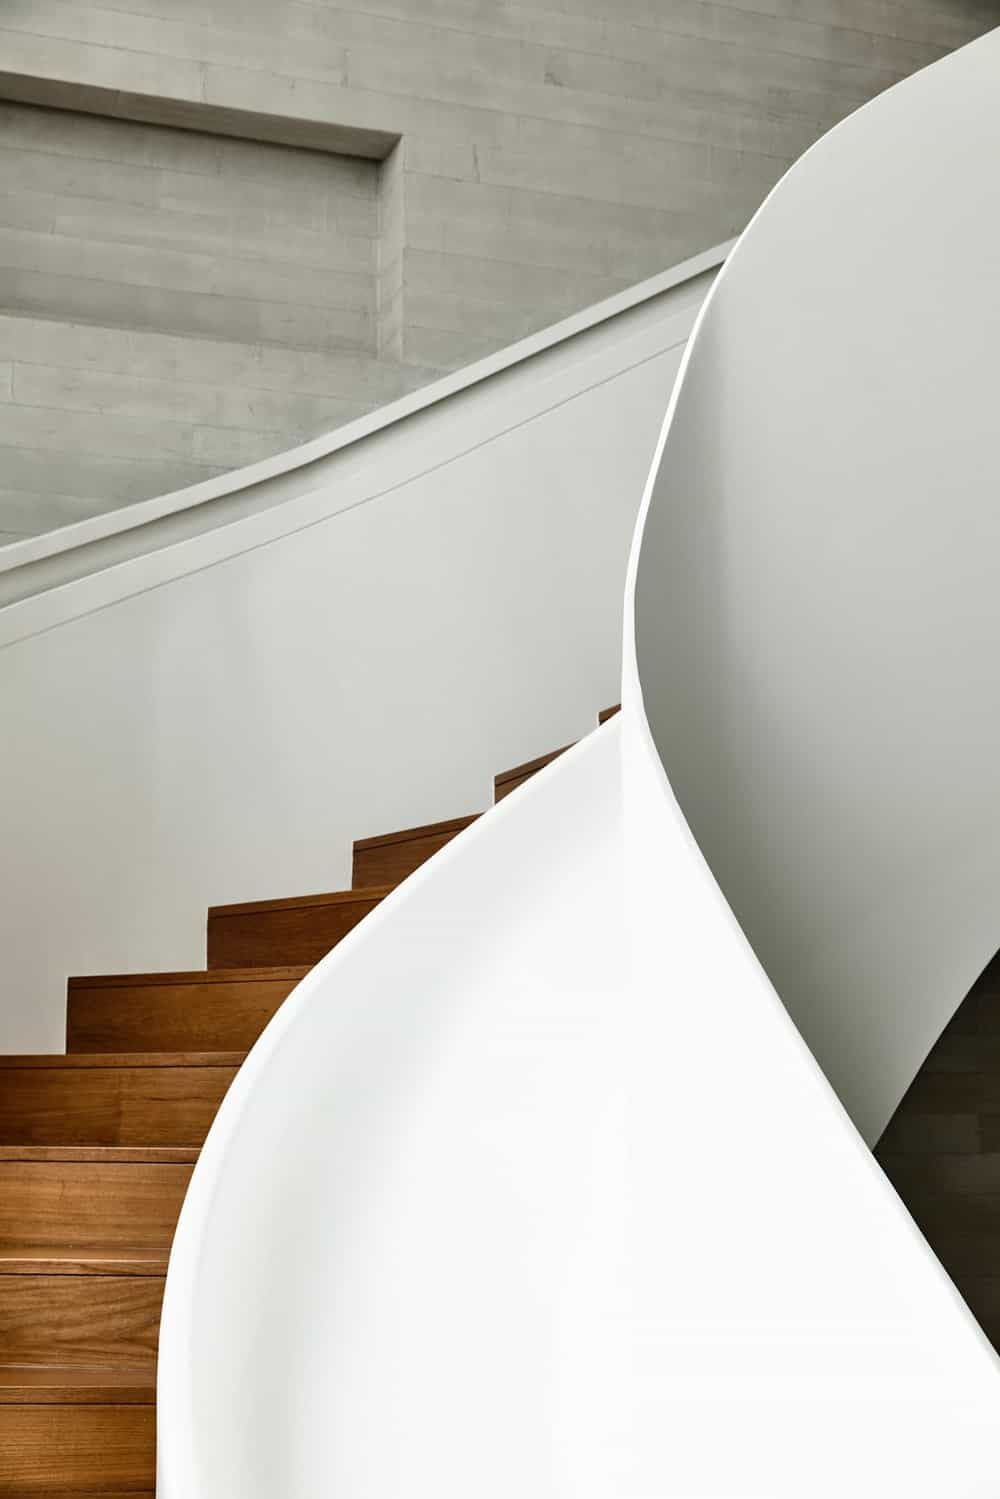 This is a view of the curved staircase from the ground level showing a smooth curve.